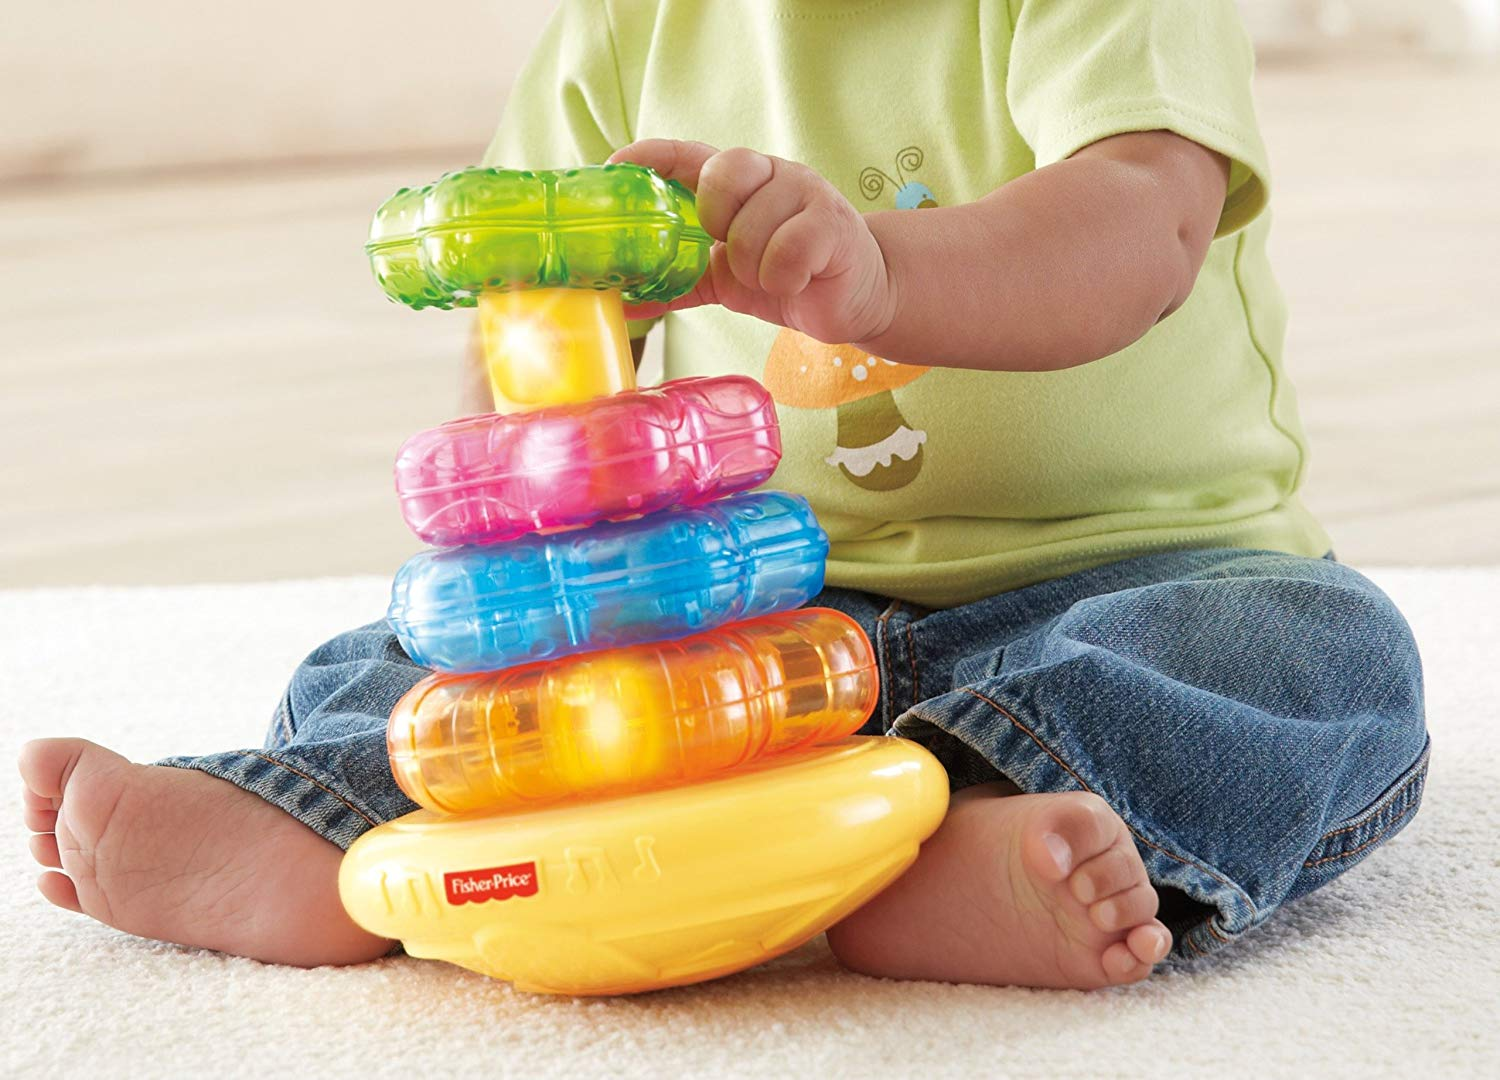 To entertain your little one, you'll want to find stimulating toys for your 9 month old. These are the best toys for a 9 to 12 month old baby